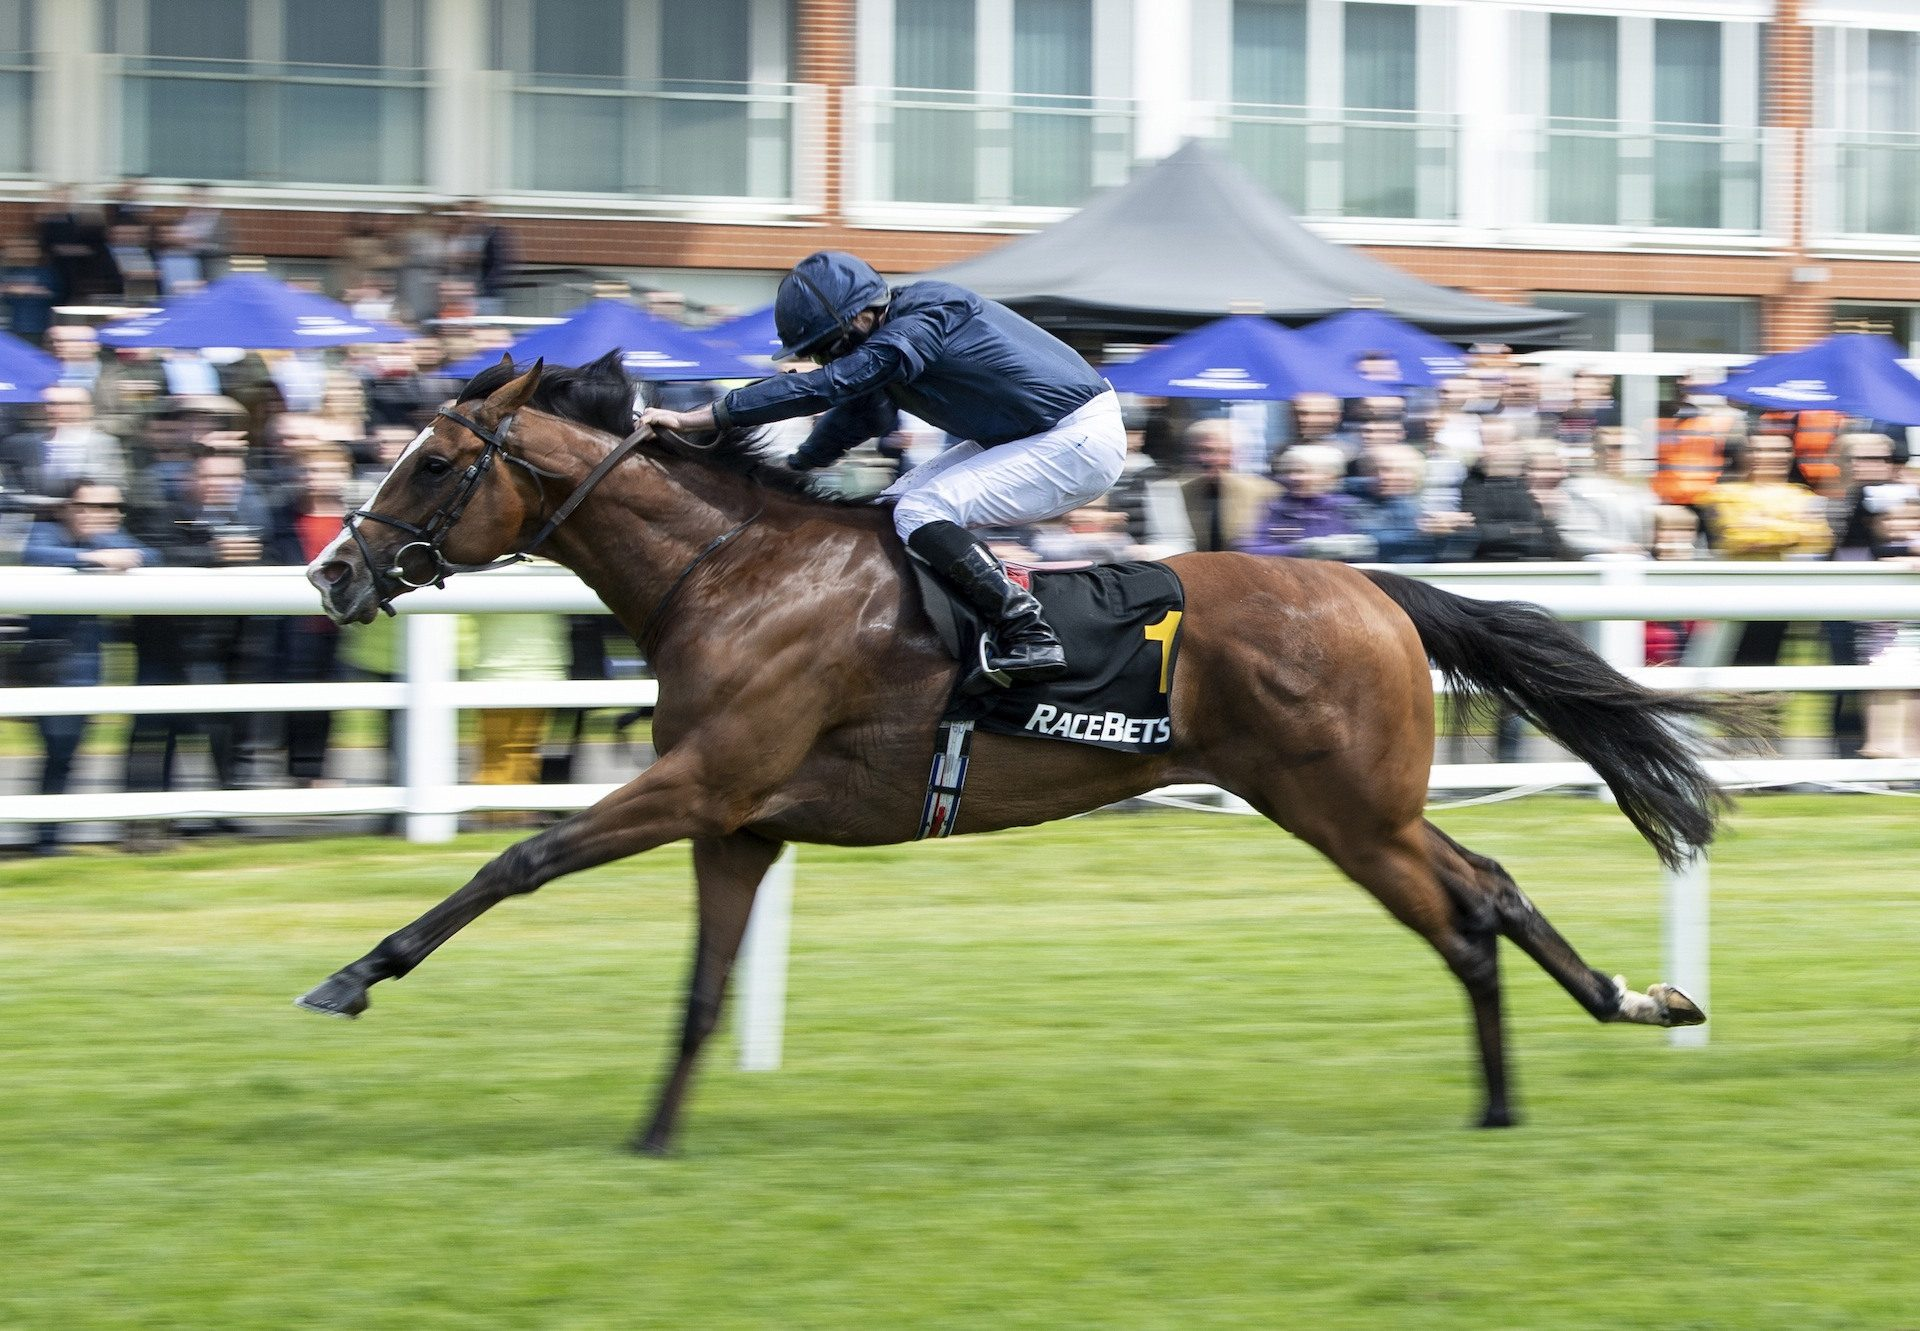 Anthony  Van  Dyck Leads Home 1 2 For  Galileo In  Derby  Trial